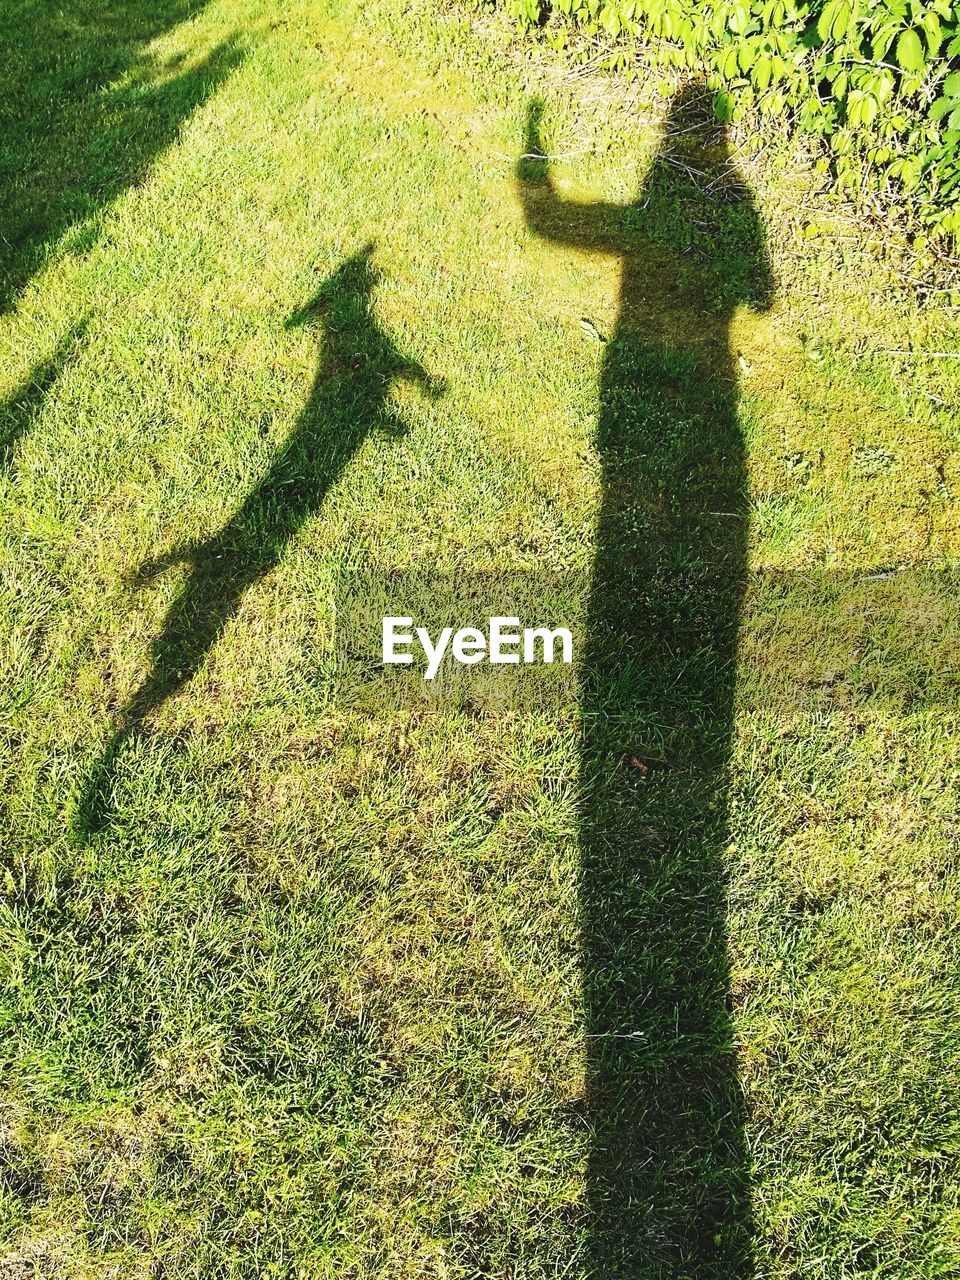 shadow, real people, focus on shadow, sunlight, long shadow - shadow, high angle view, lifestyles, green color, grass, leisure activity, field, day, two people, growth, standing, outdoors, men, togetherness, nature, people